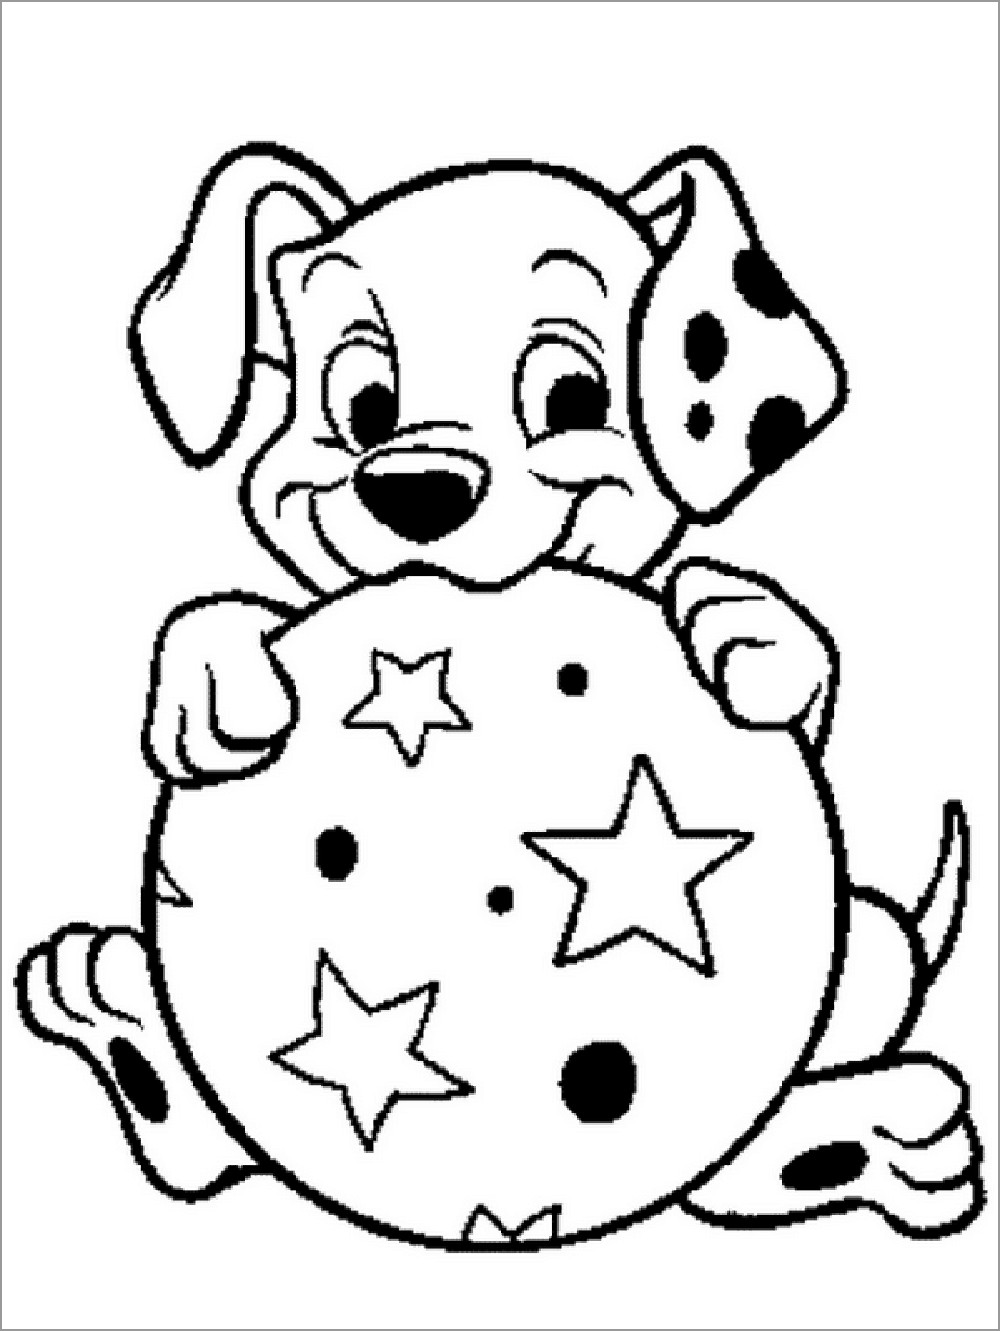 101 Dalmatians Coloring Pages to Print